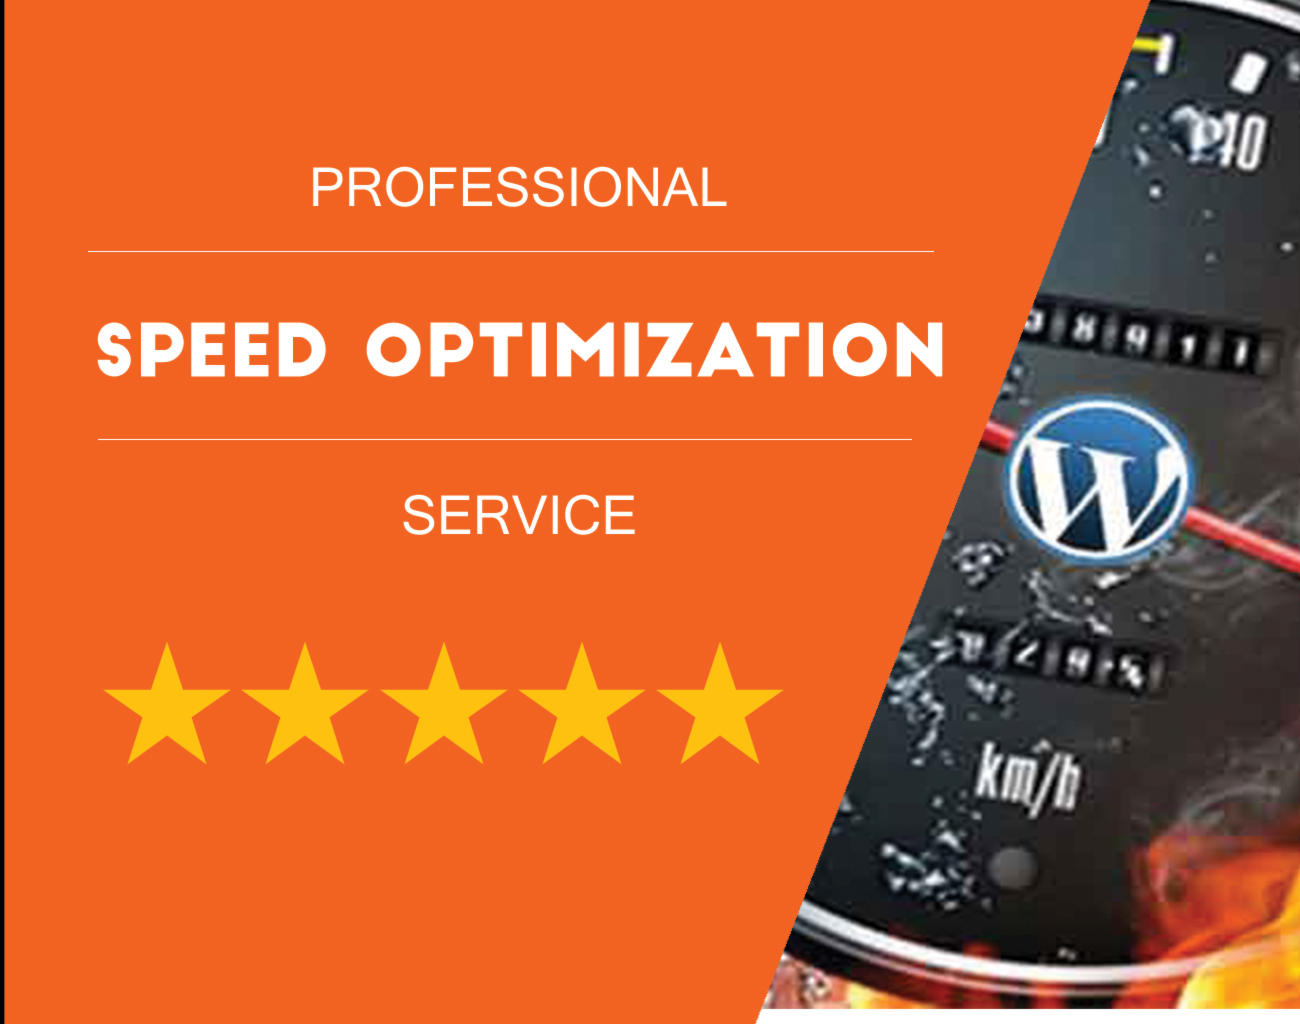 Wordpress Website Speed Optimization by hibiscustechno - 107960